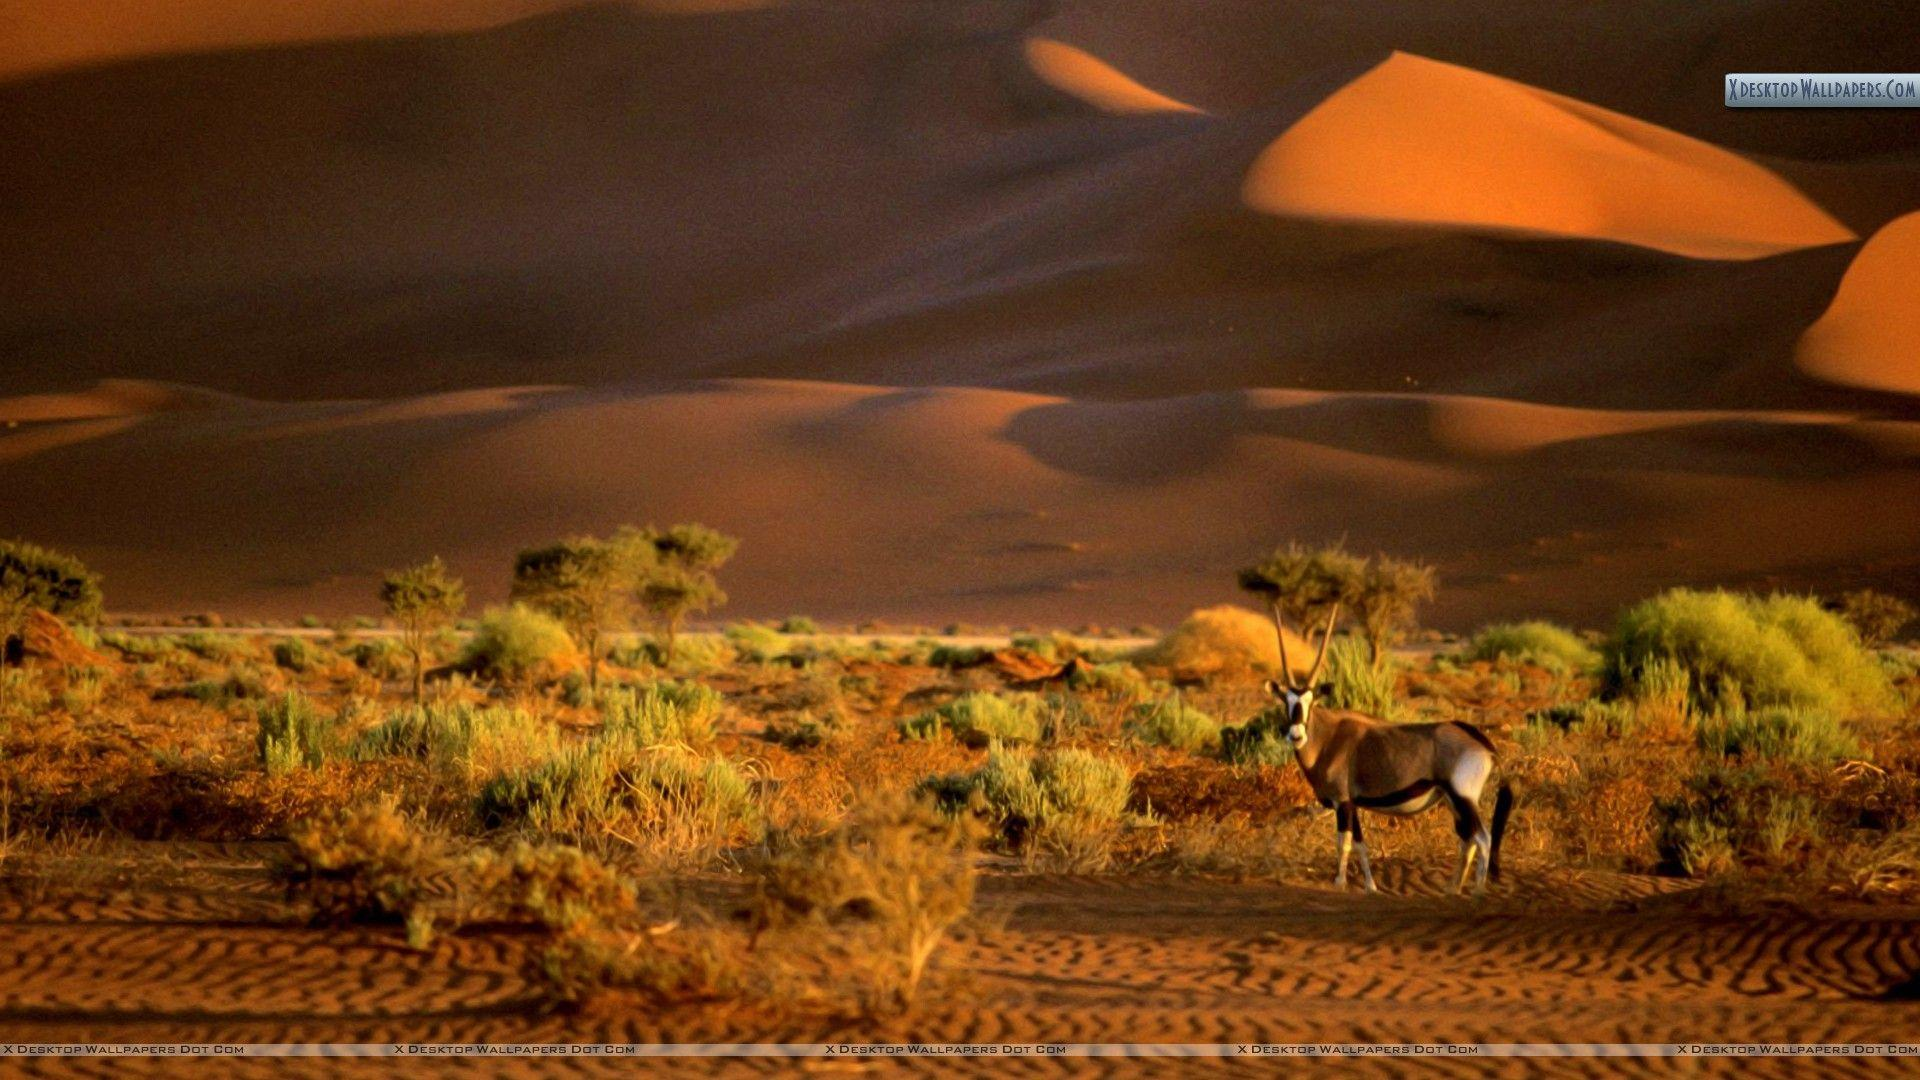 Oryx, Namibia, Africa Wallpaper